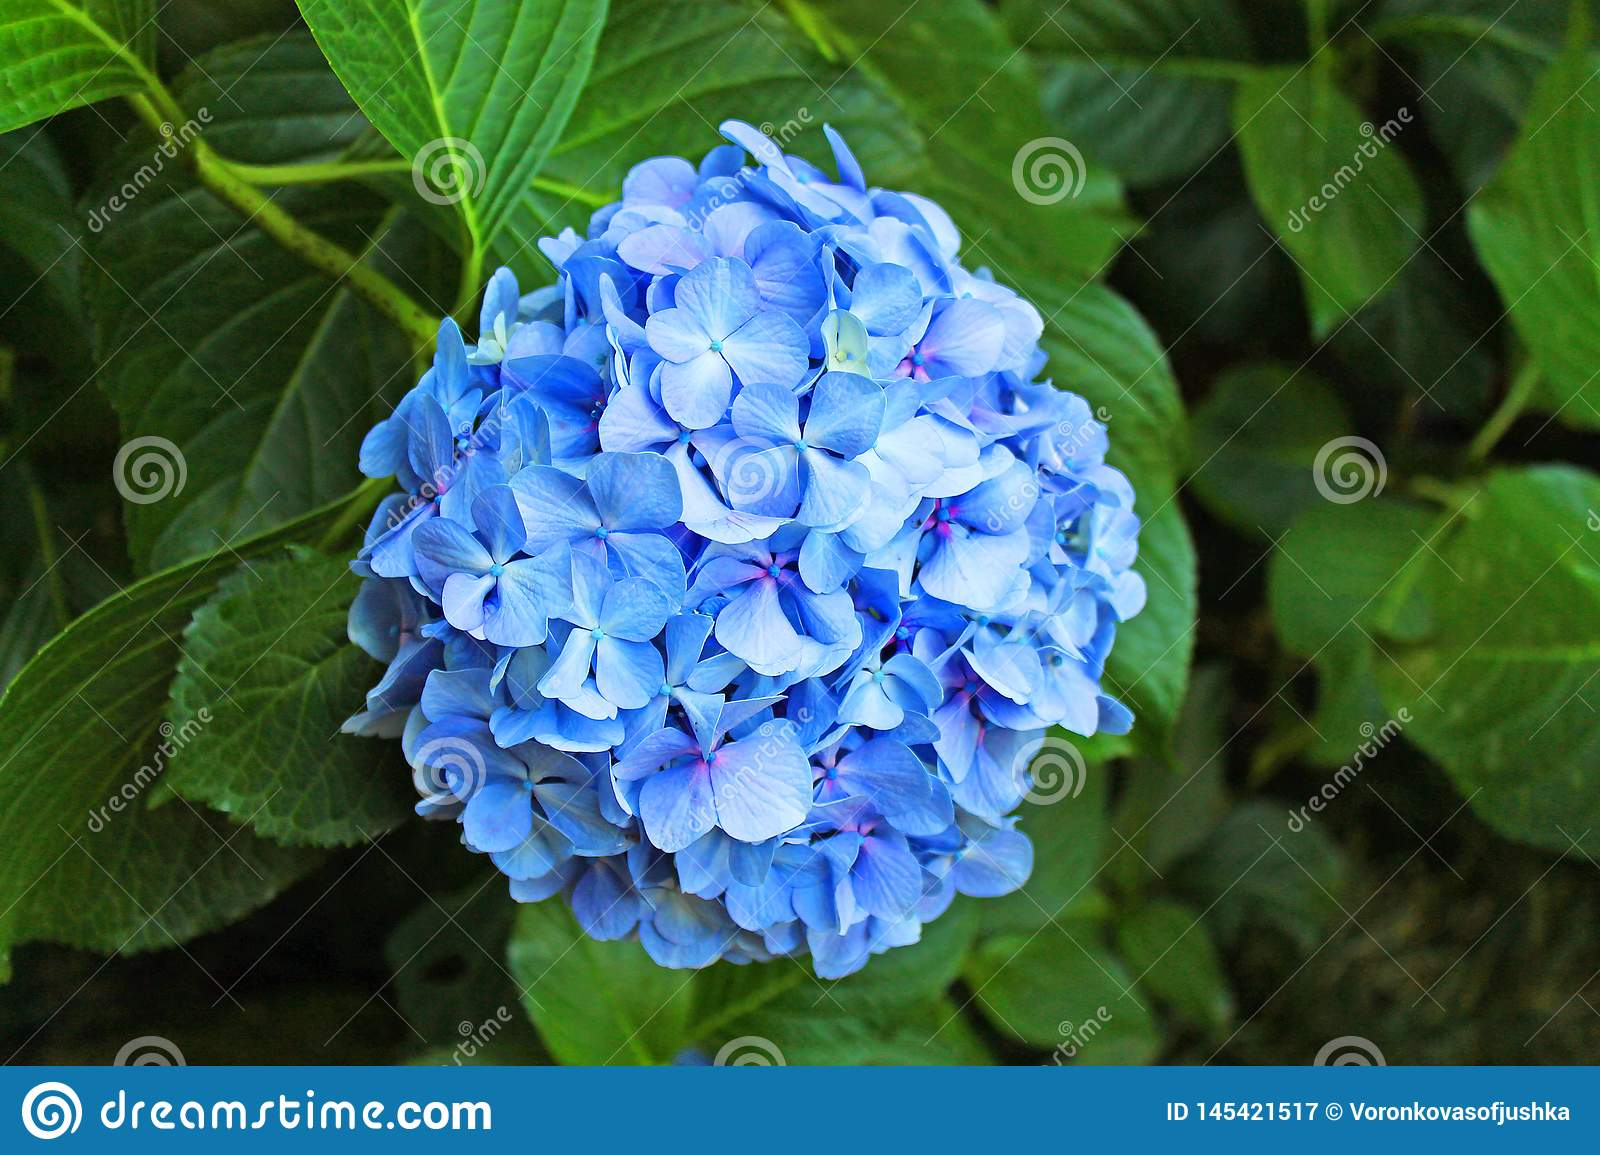 Bright blue flower on a background of green foliage